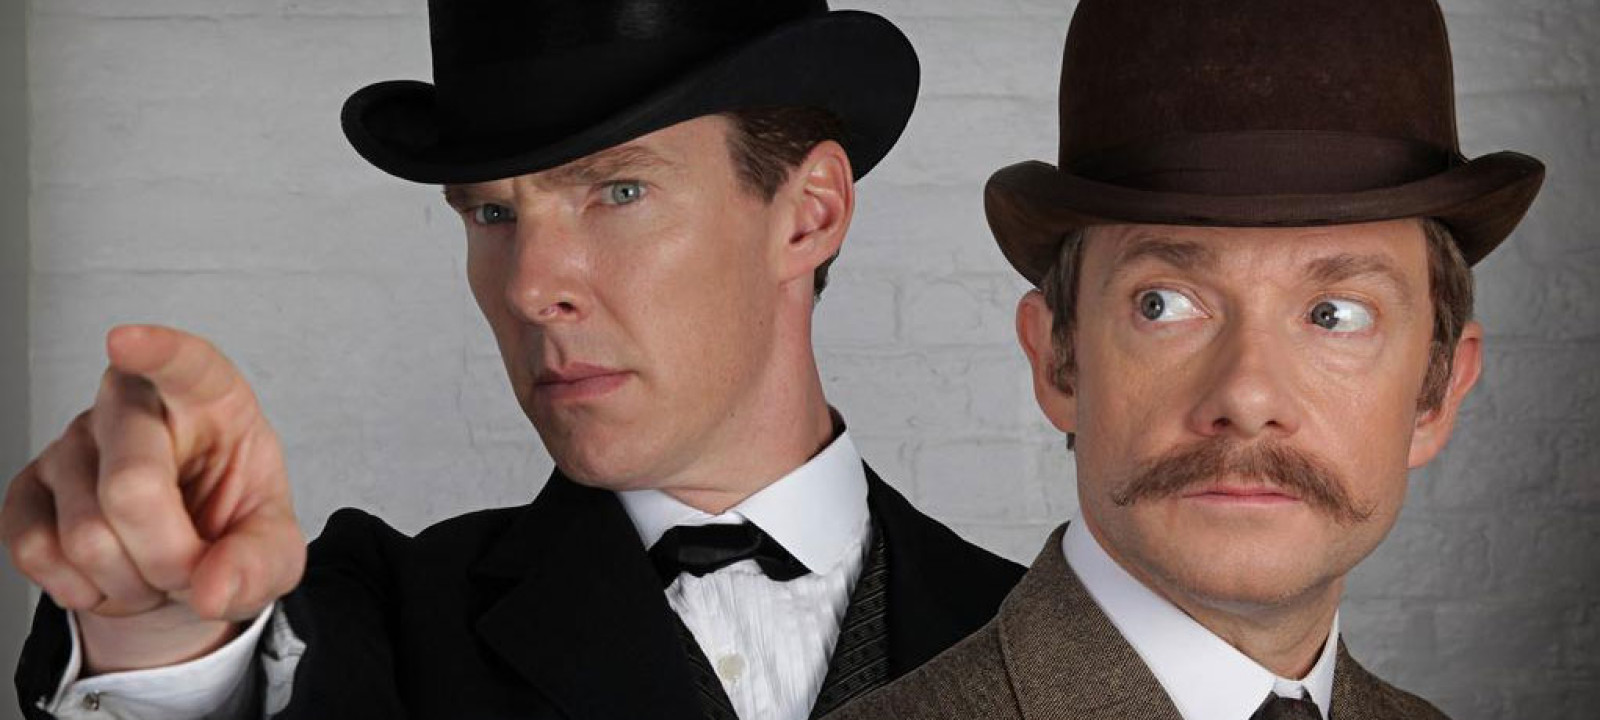 Benedict Cumberbatch and Martin Freeman in 'Sherlock'